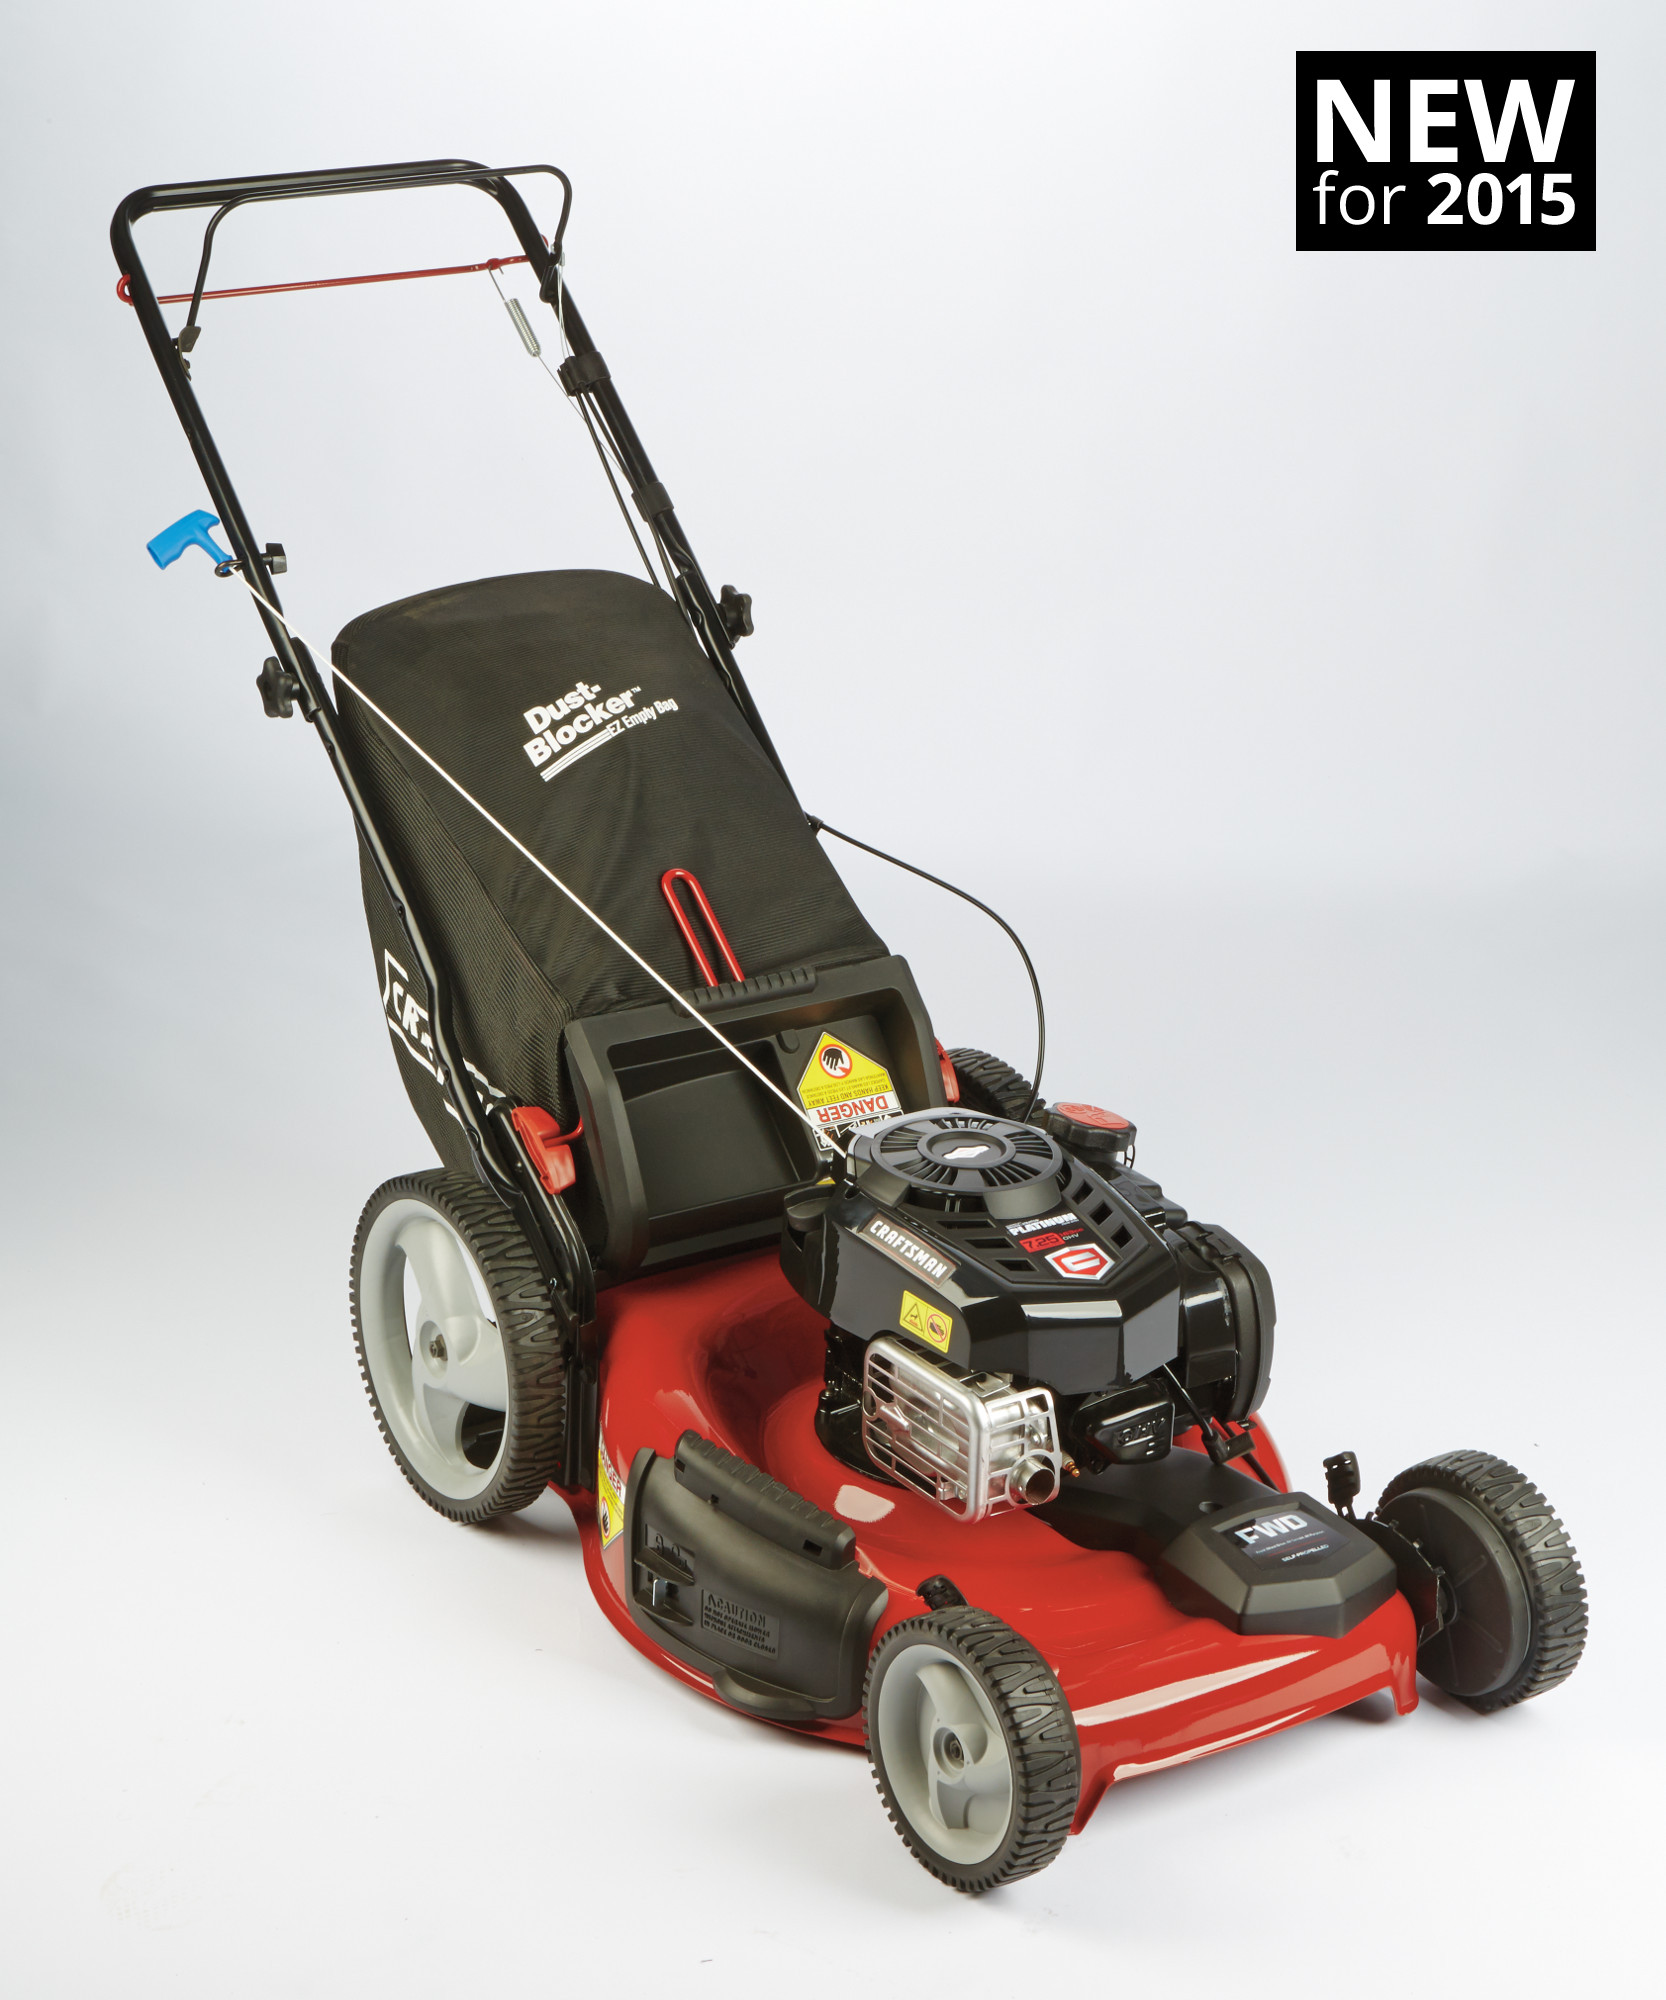 Craftsman  22'' Briggs & Stratton 725 EXi Platinum Series™ OHV Engine, Front Drive Self-Propelled Mower